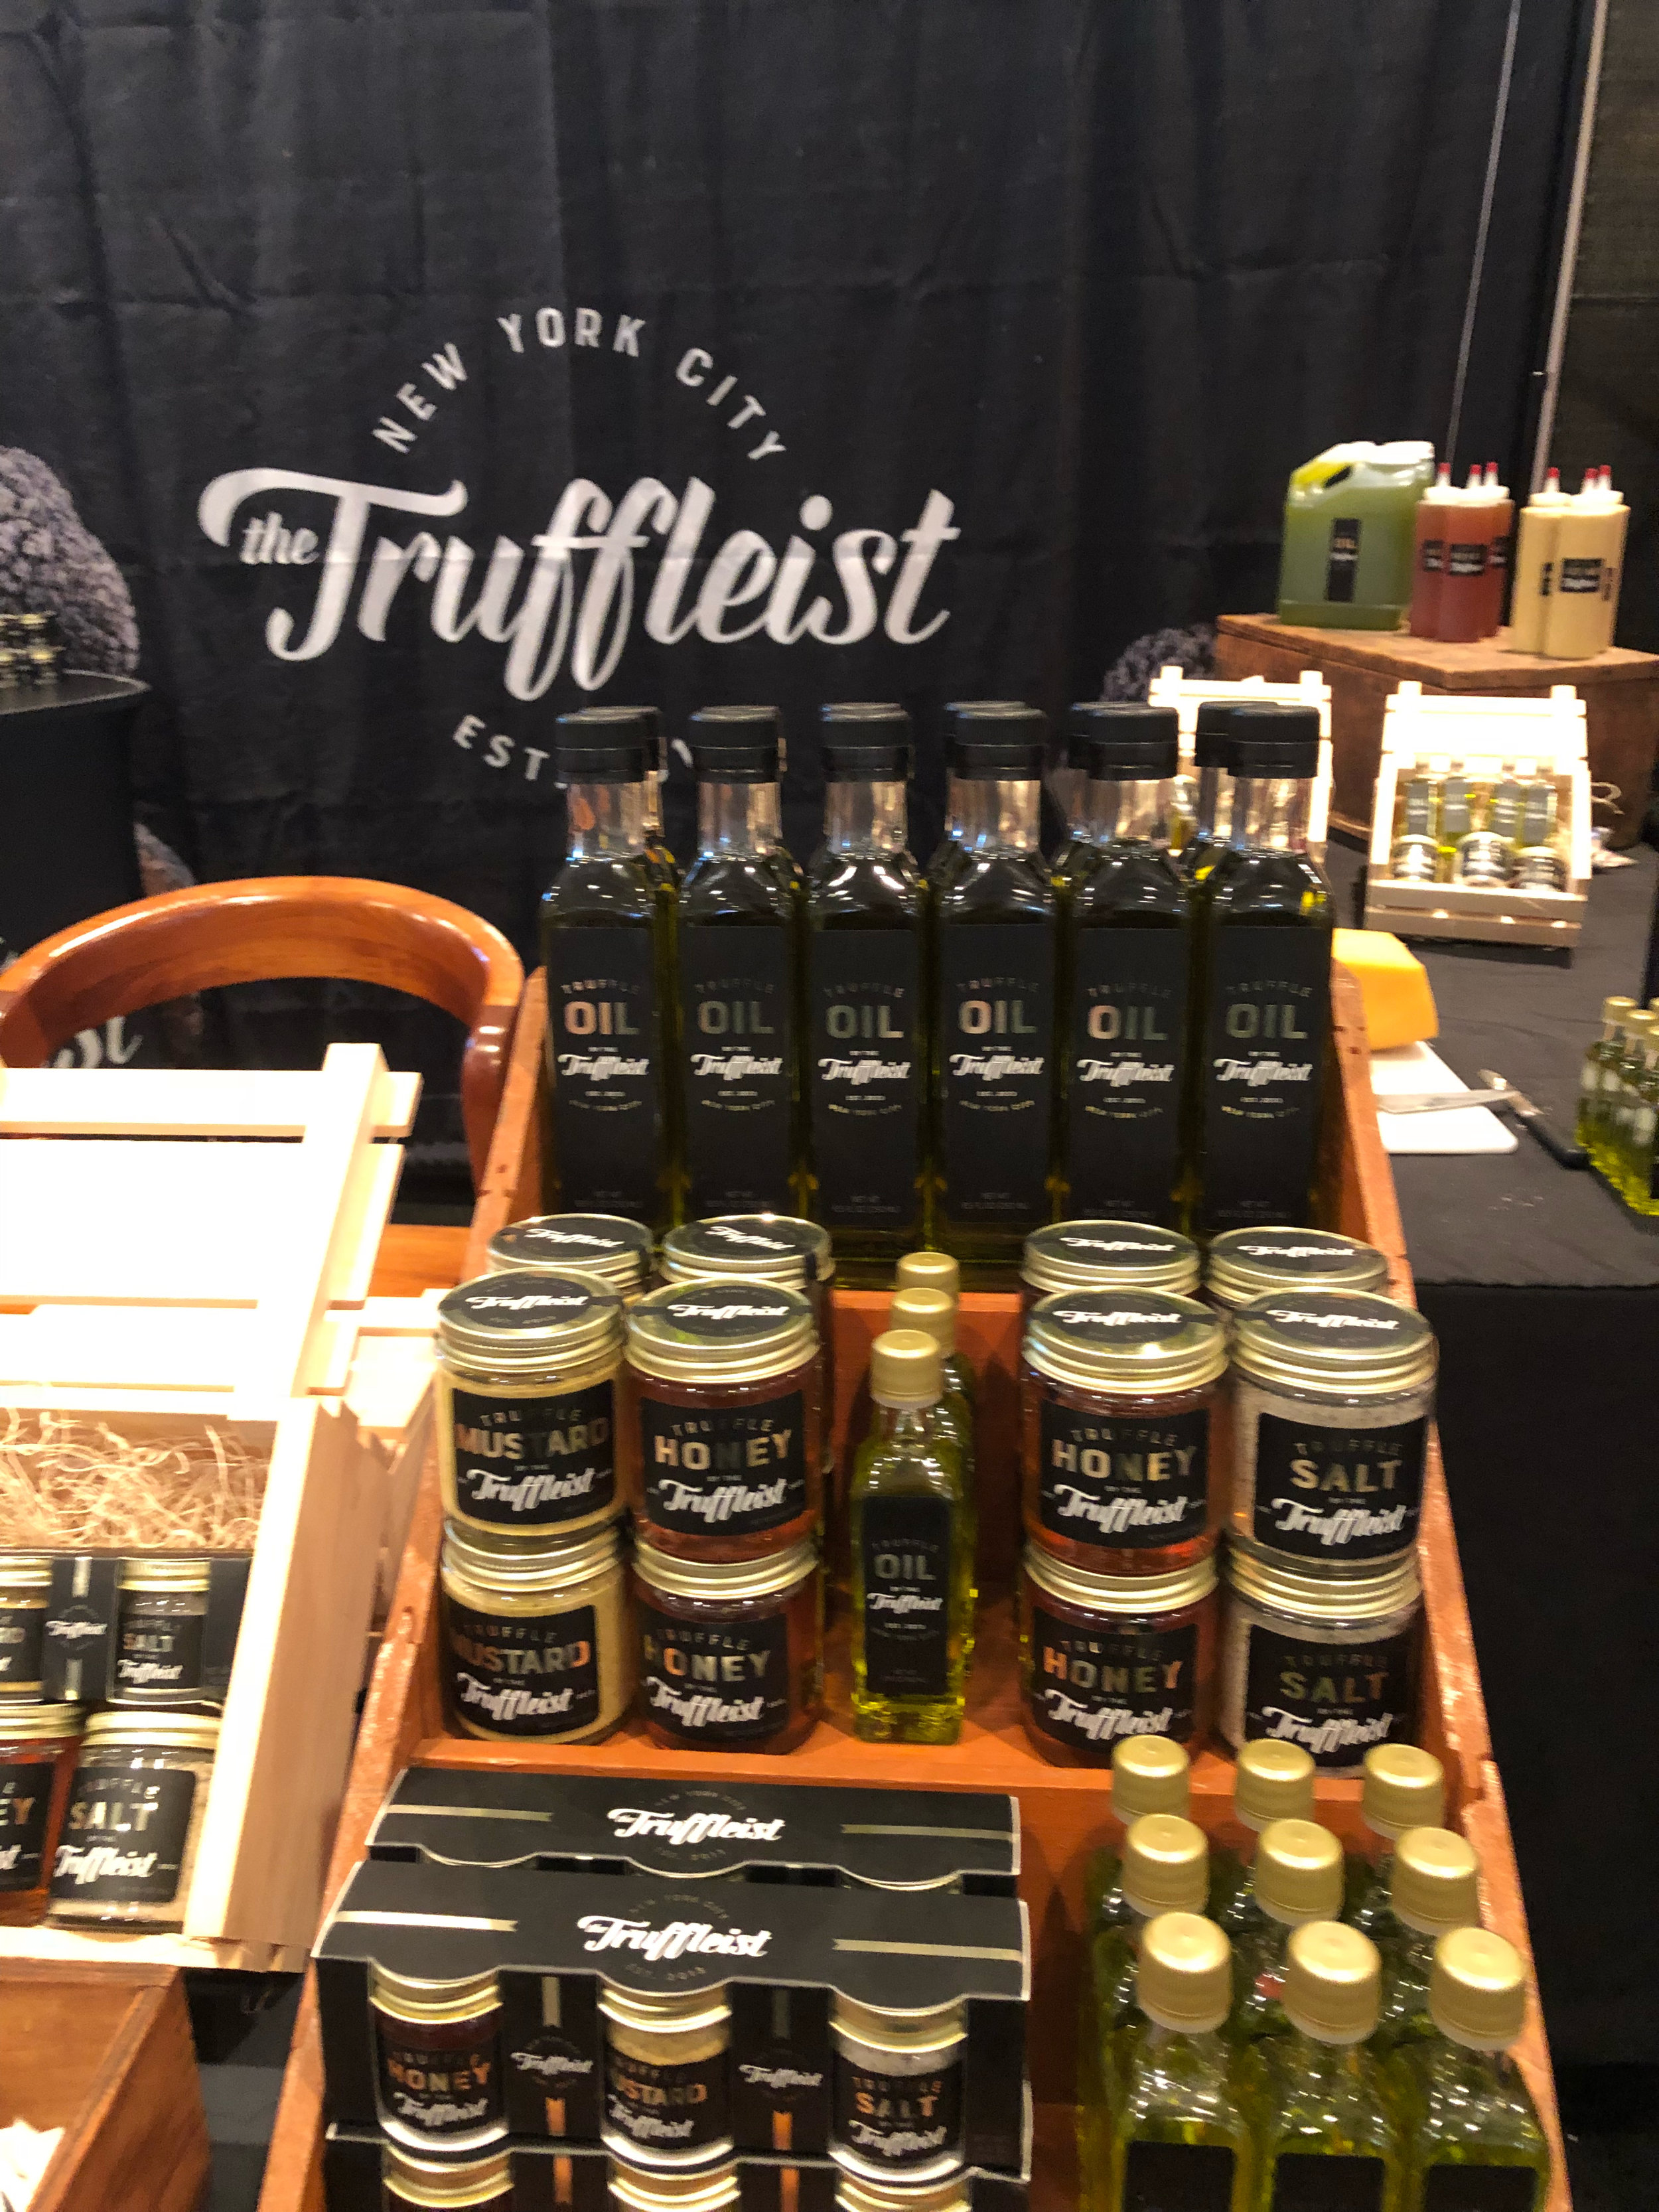 The Truffleist products at the 2018 Summer Fancy Food Show |  Foodable Network